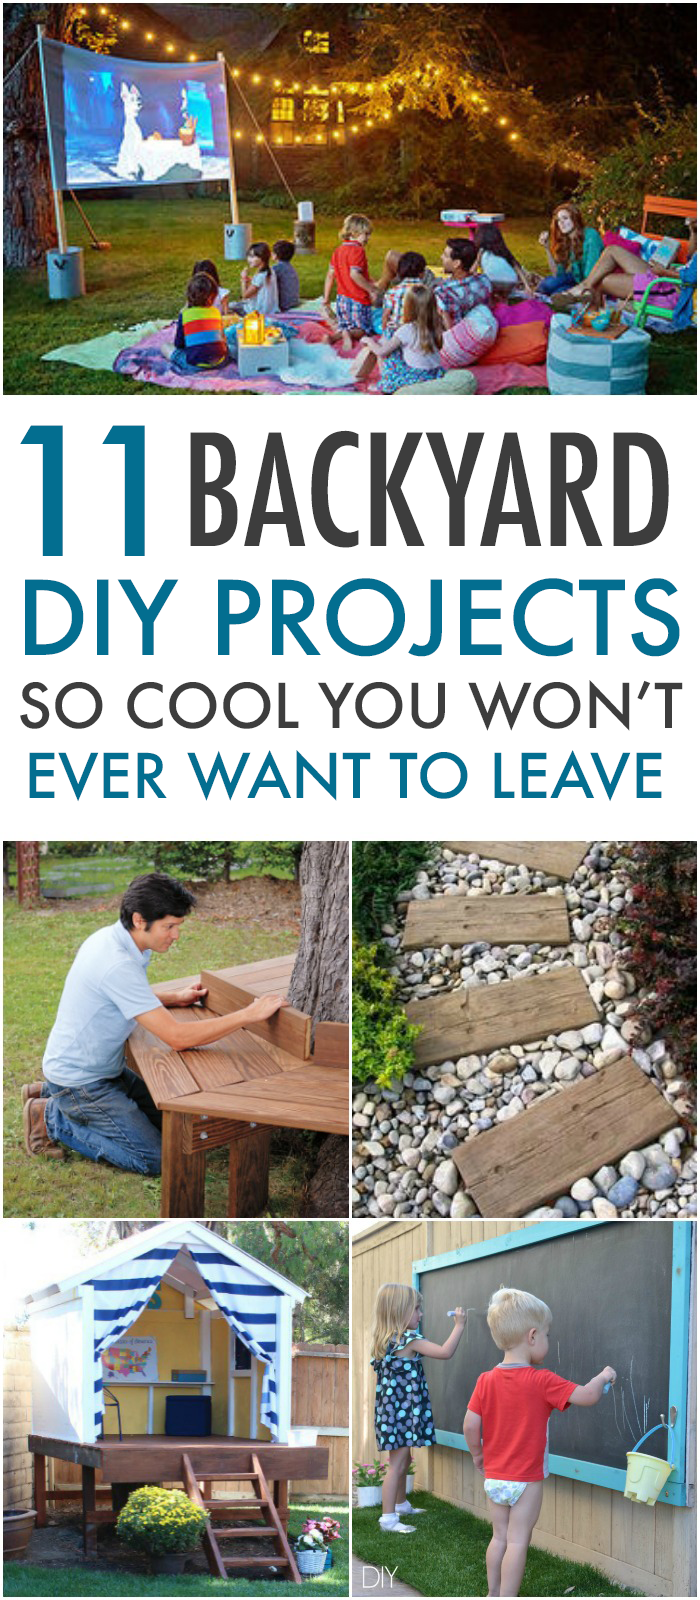 11 Yard DIY'S So Cool You Won't Want To Leave